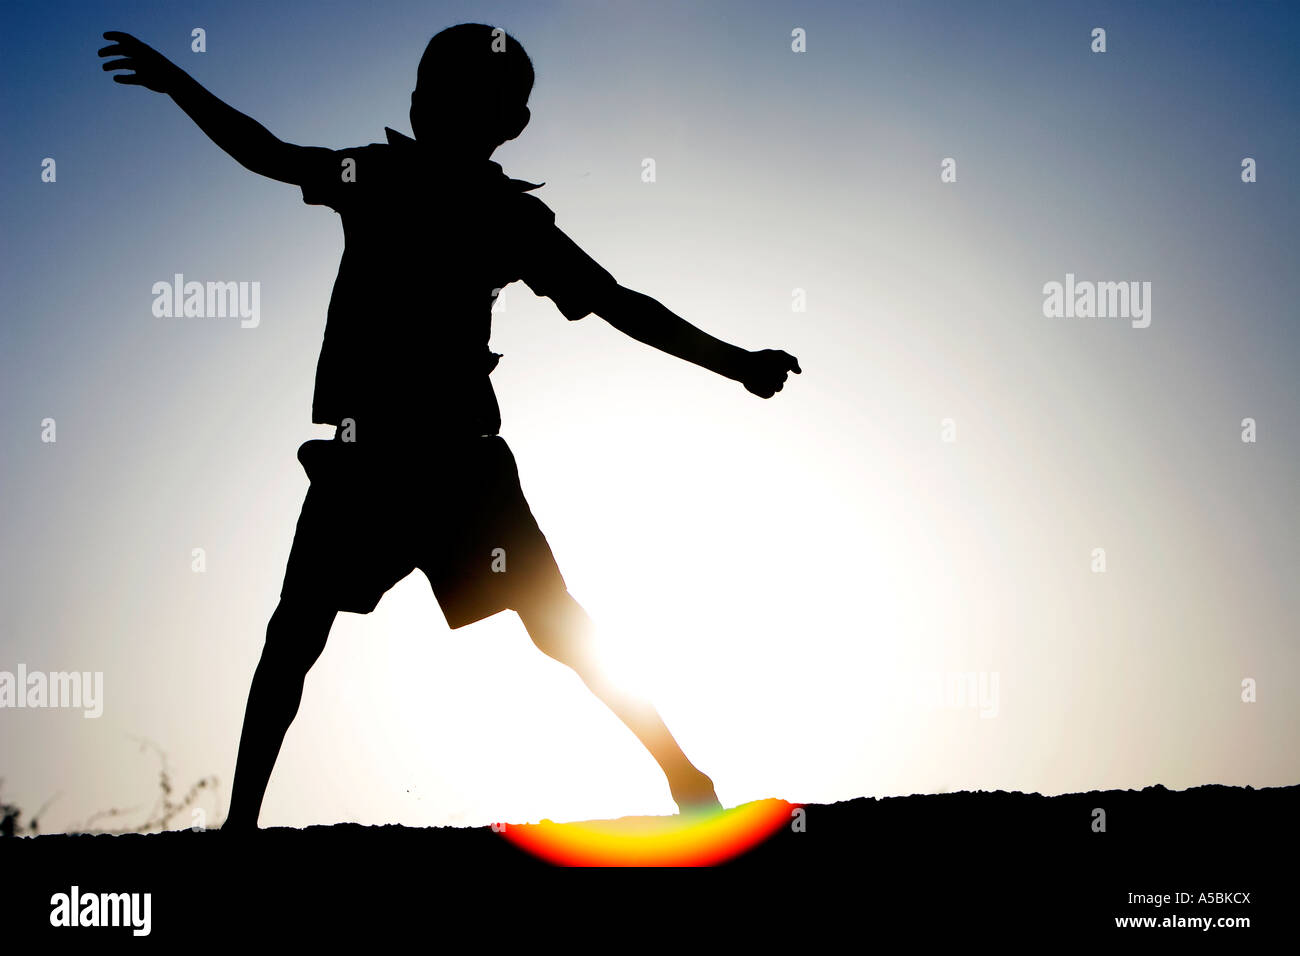 Silhouette profile of a young Indian boy dancing against hazy sun setting background showing lens flare. India - Stock Image